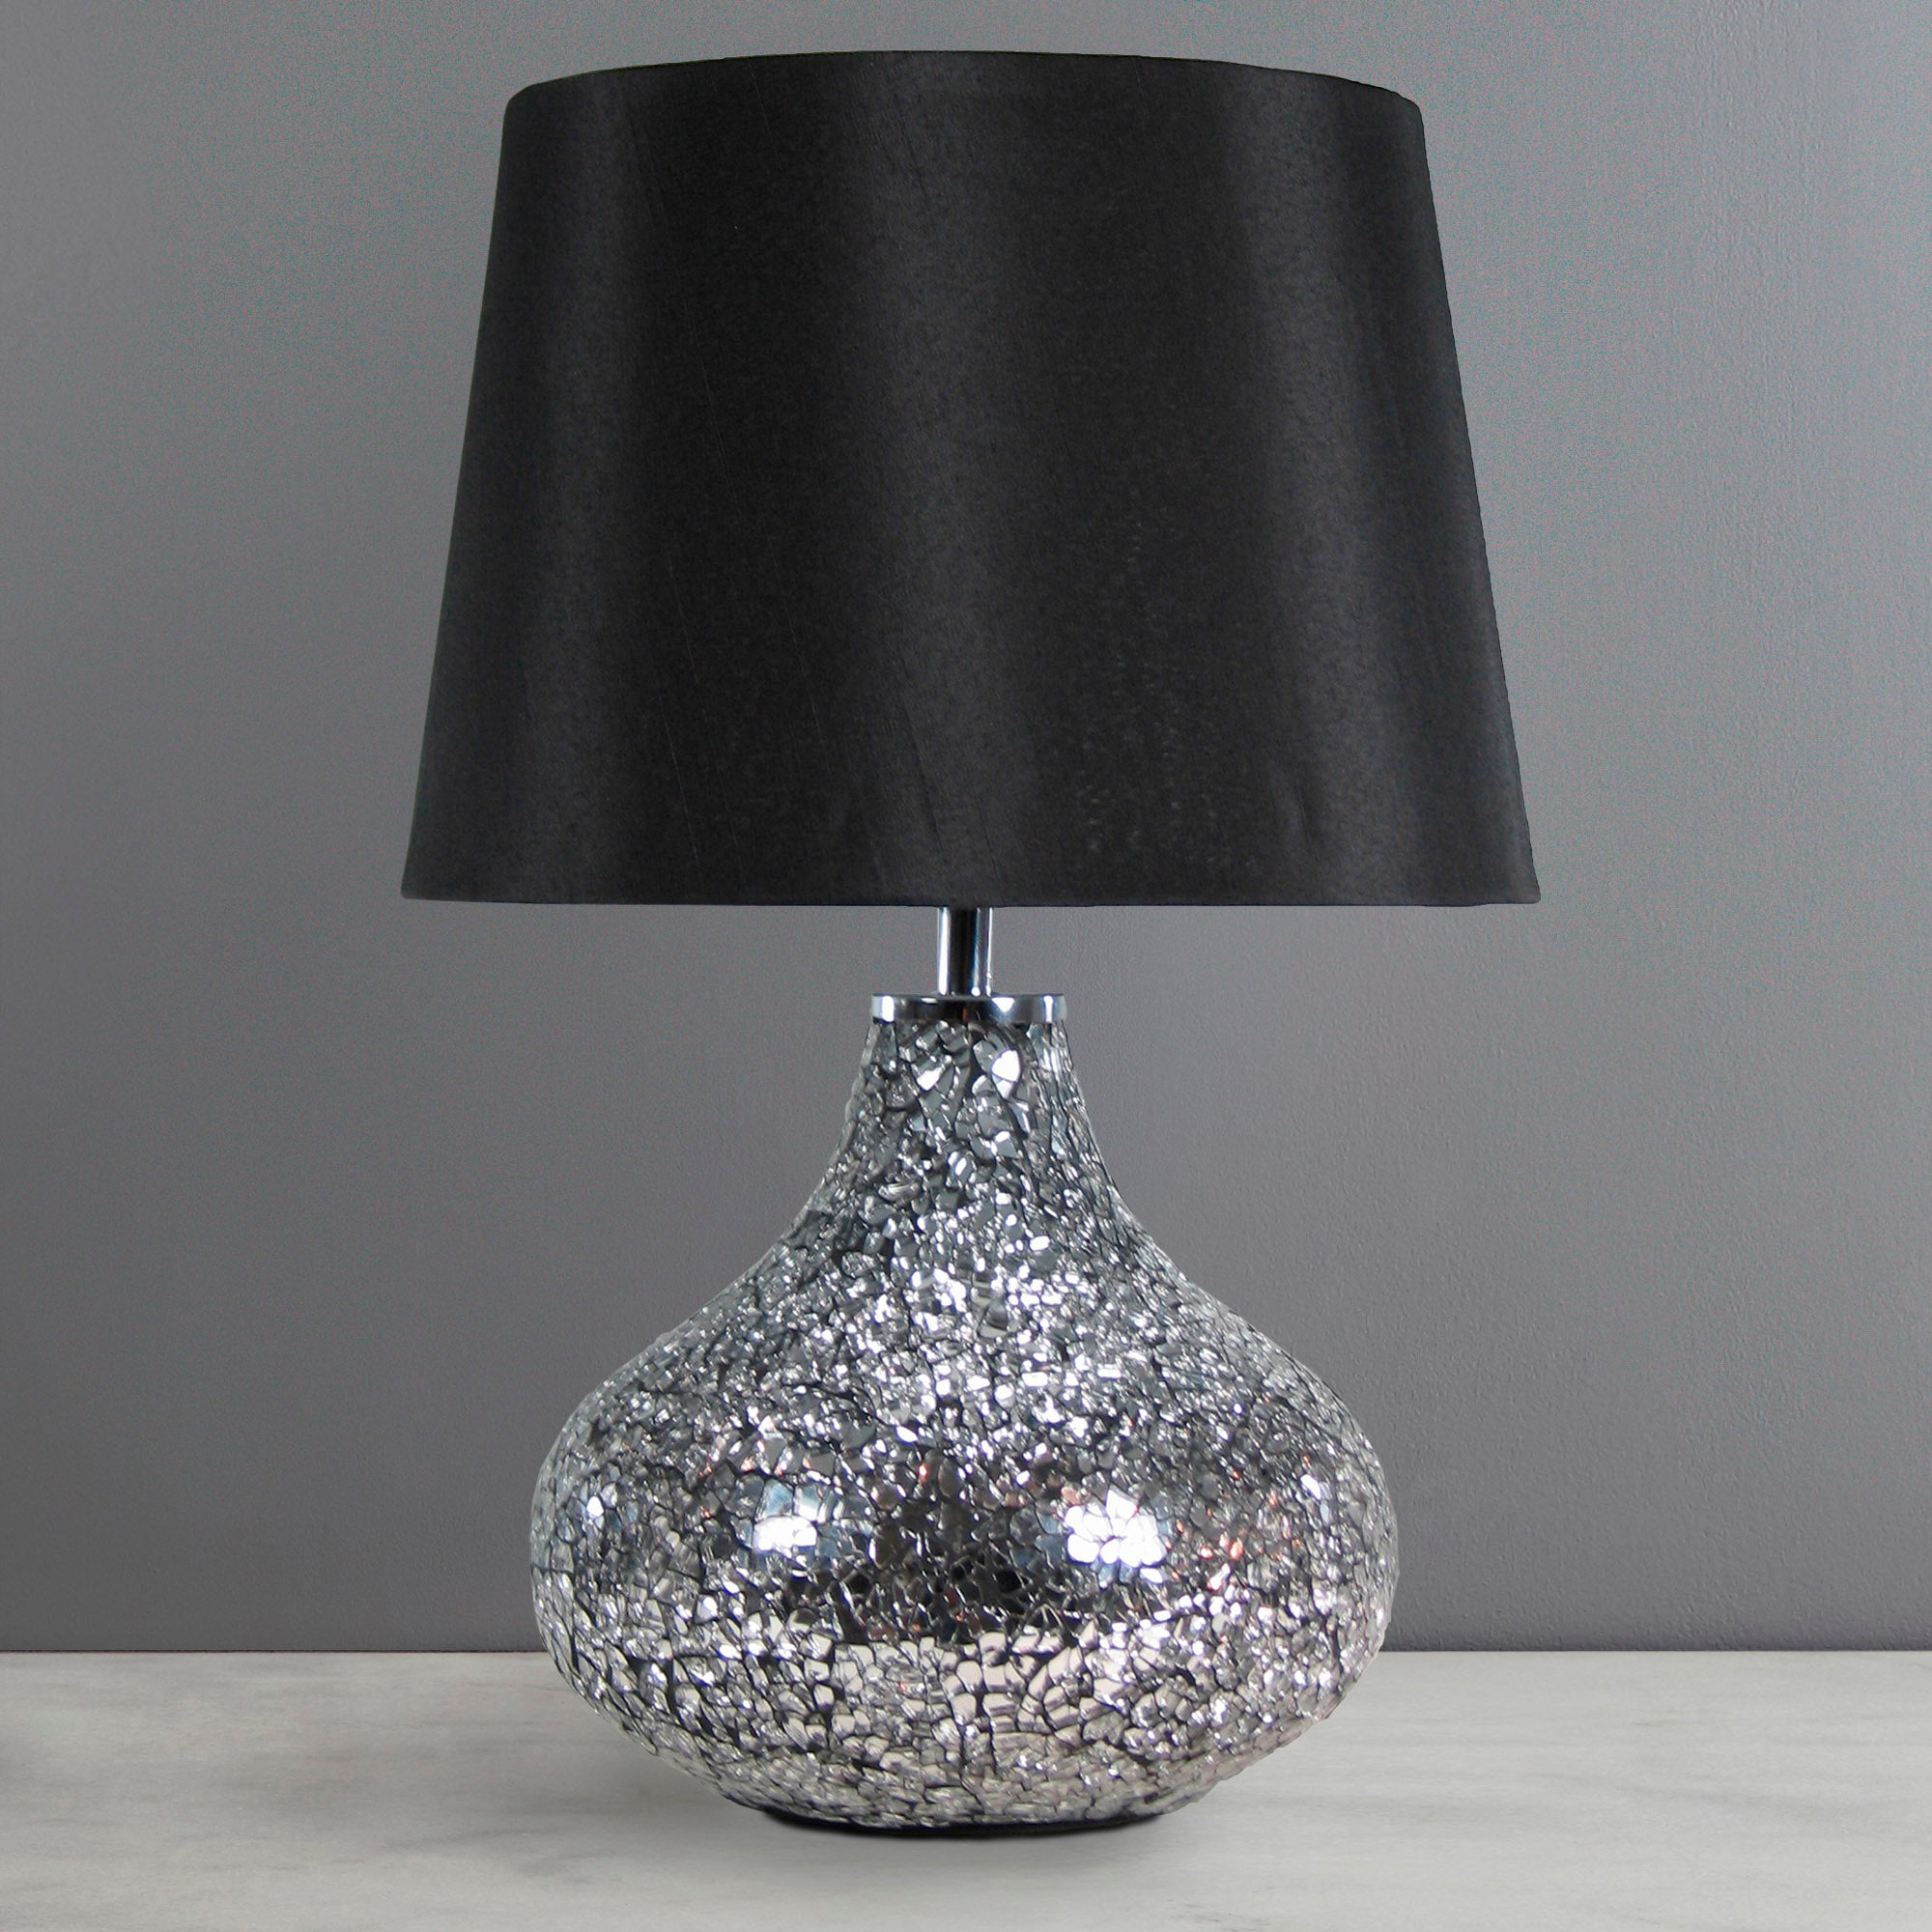 Dunelm Wall Lamp Shades : Glass ball lamp shade Shop for cheap products and Save online